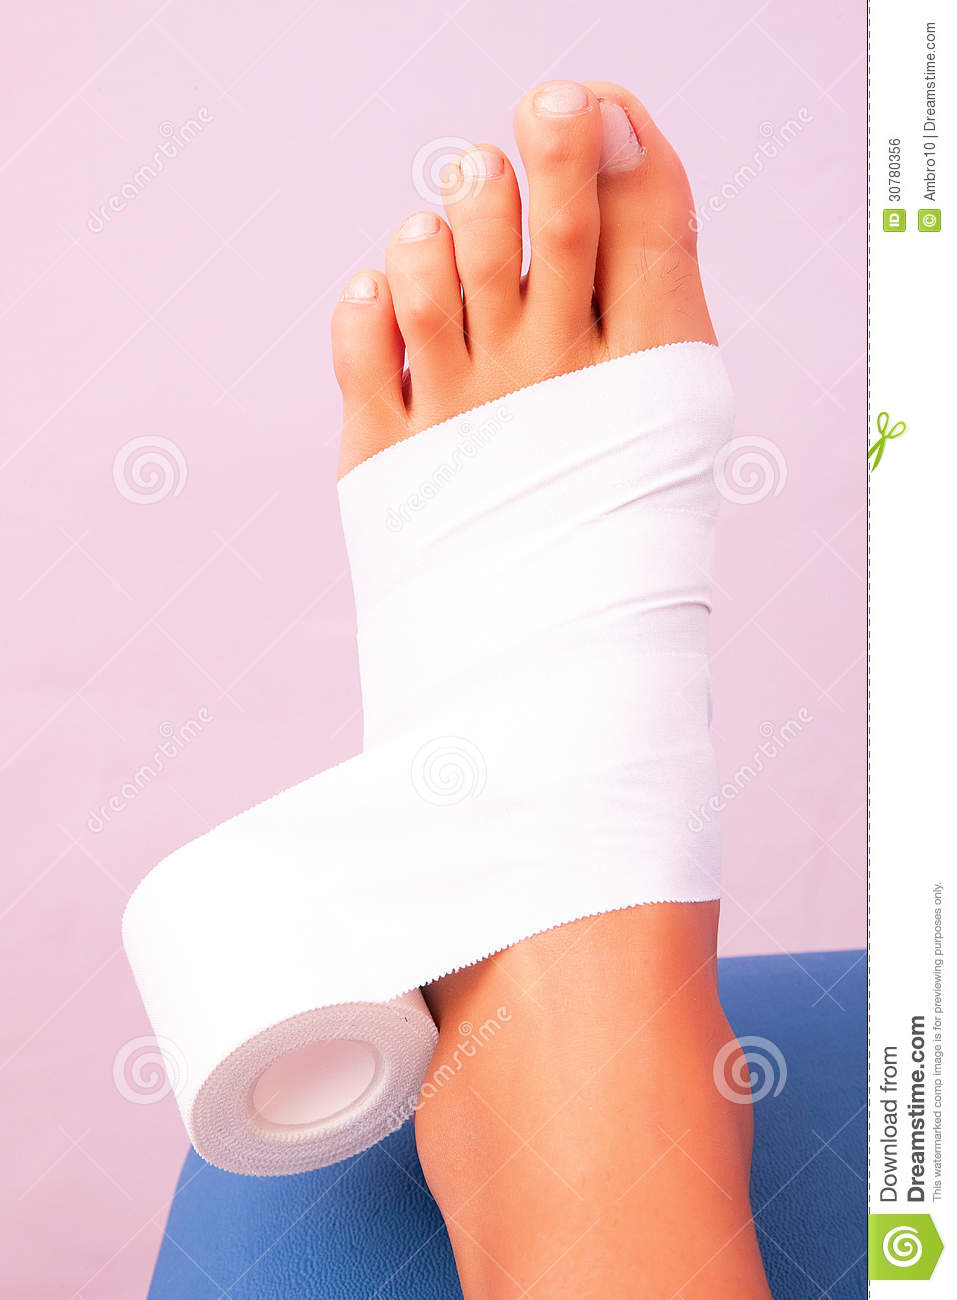 functional bandage tibial tarsal royalty free stock image beautician tools clipart beautician scissors clipart